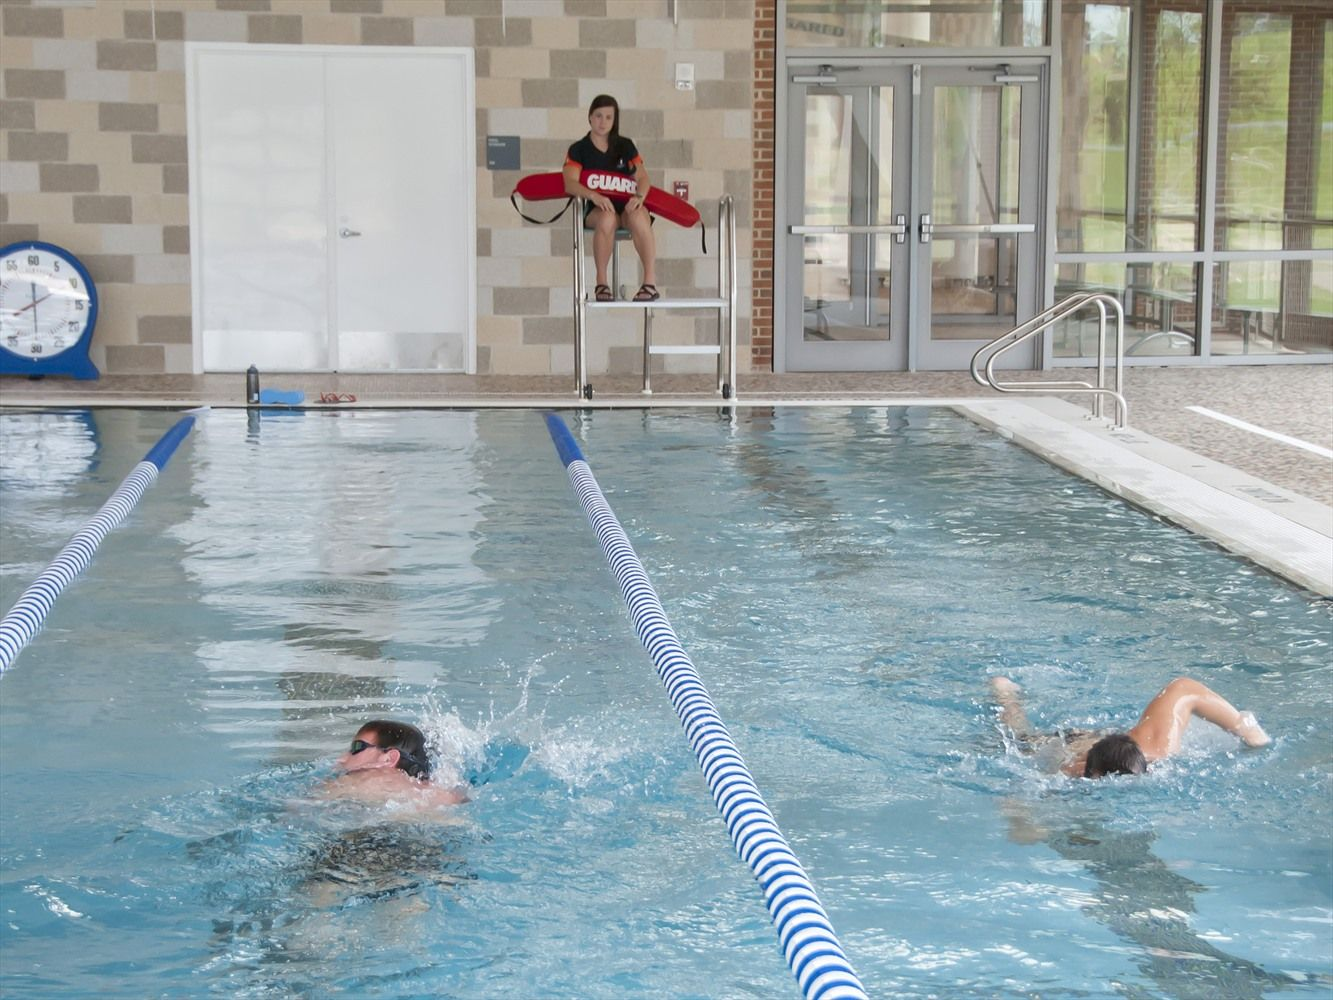 Swimmers swim laps in the wellness center pool aum campus photos pinterest swim wellness for How to swim laps in small pool